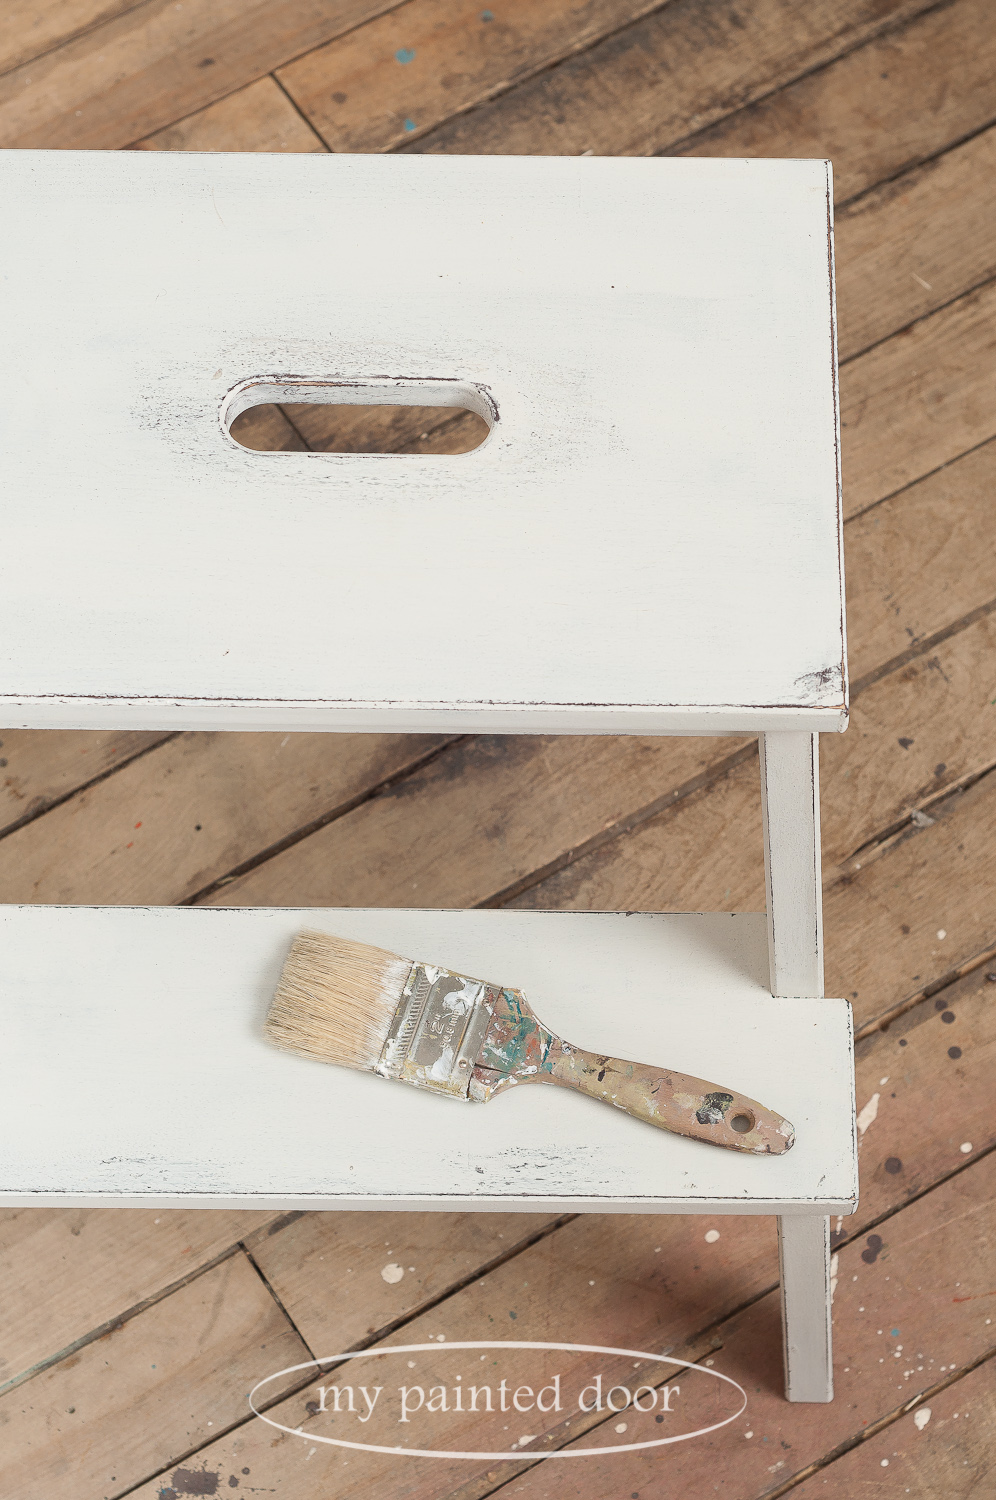 Ikea hack! Learn how to paint an Ikea stool to make it look like a farmhouse stool. Stool painted in Miss Mustard Seed's Milk Paint in the colour Farmhouse White.